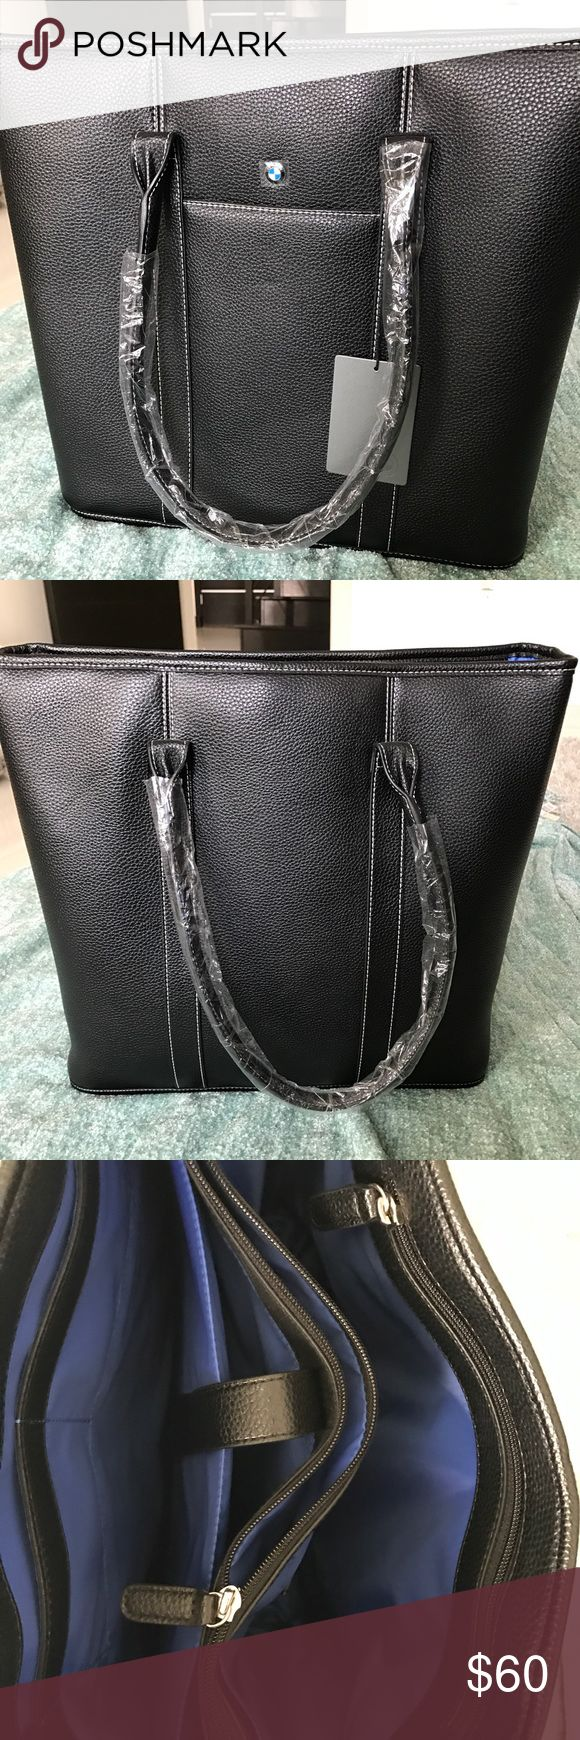 """BMW Black Handbag New with tags, measures 15"""" length, 13"""" height,  4.5"""" width, has so many interior compartments to mention, see 3rd photo BMW Bags"""